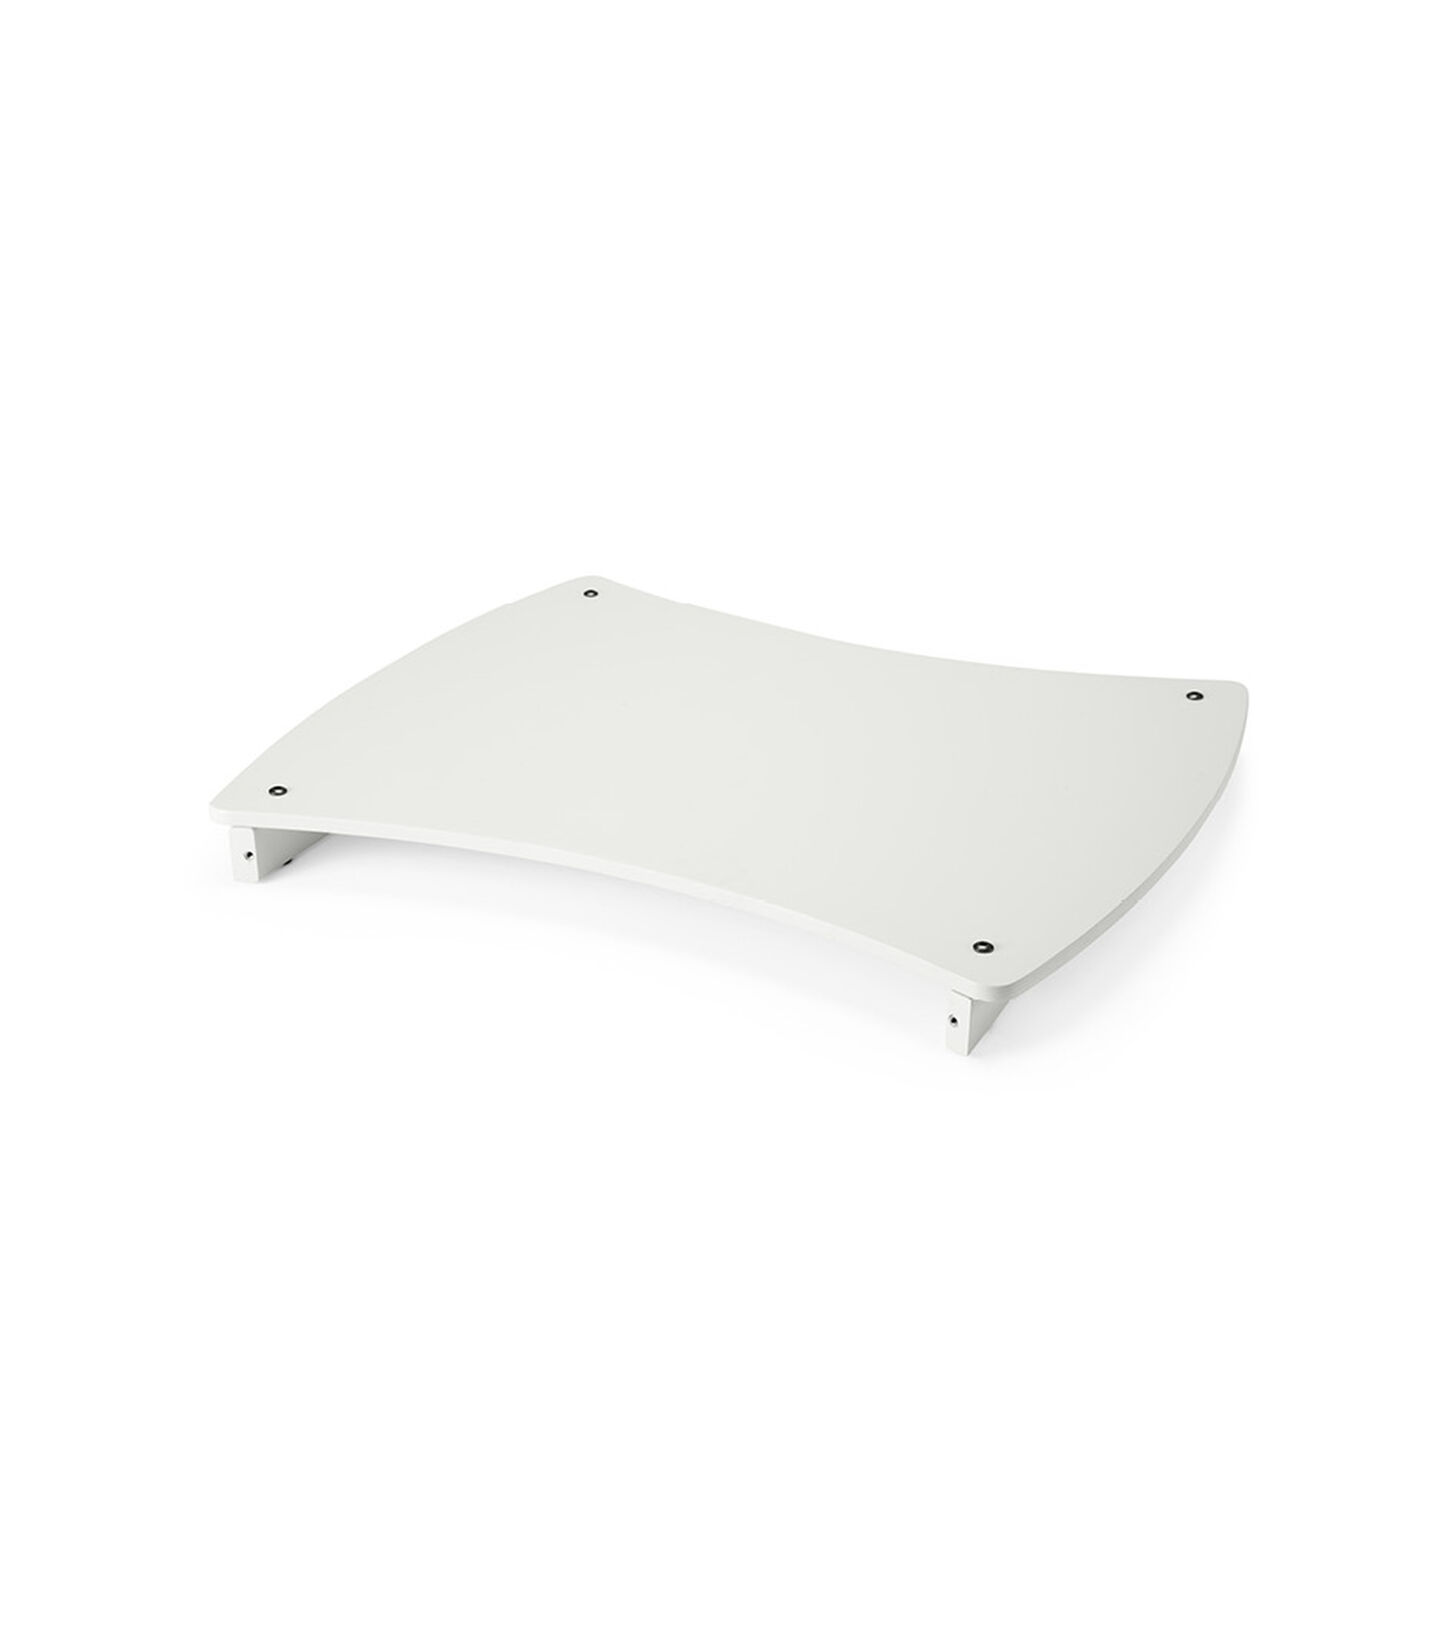 Stokke® Care™ Topshelf compl Blanco, Blanco, mainview view 2